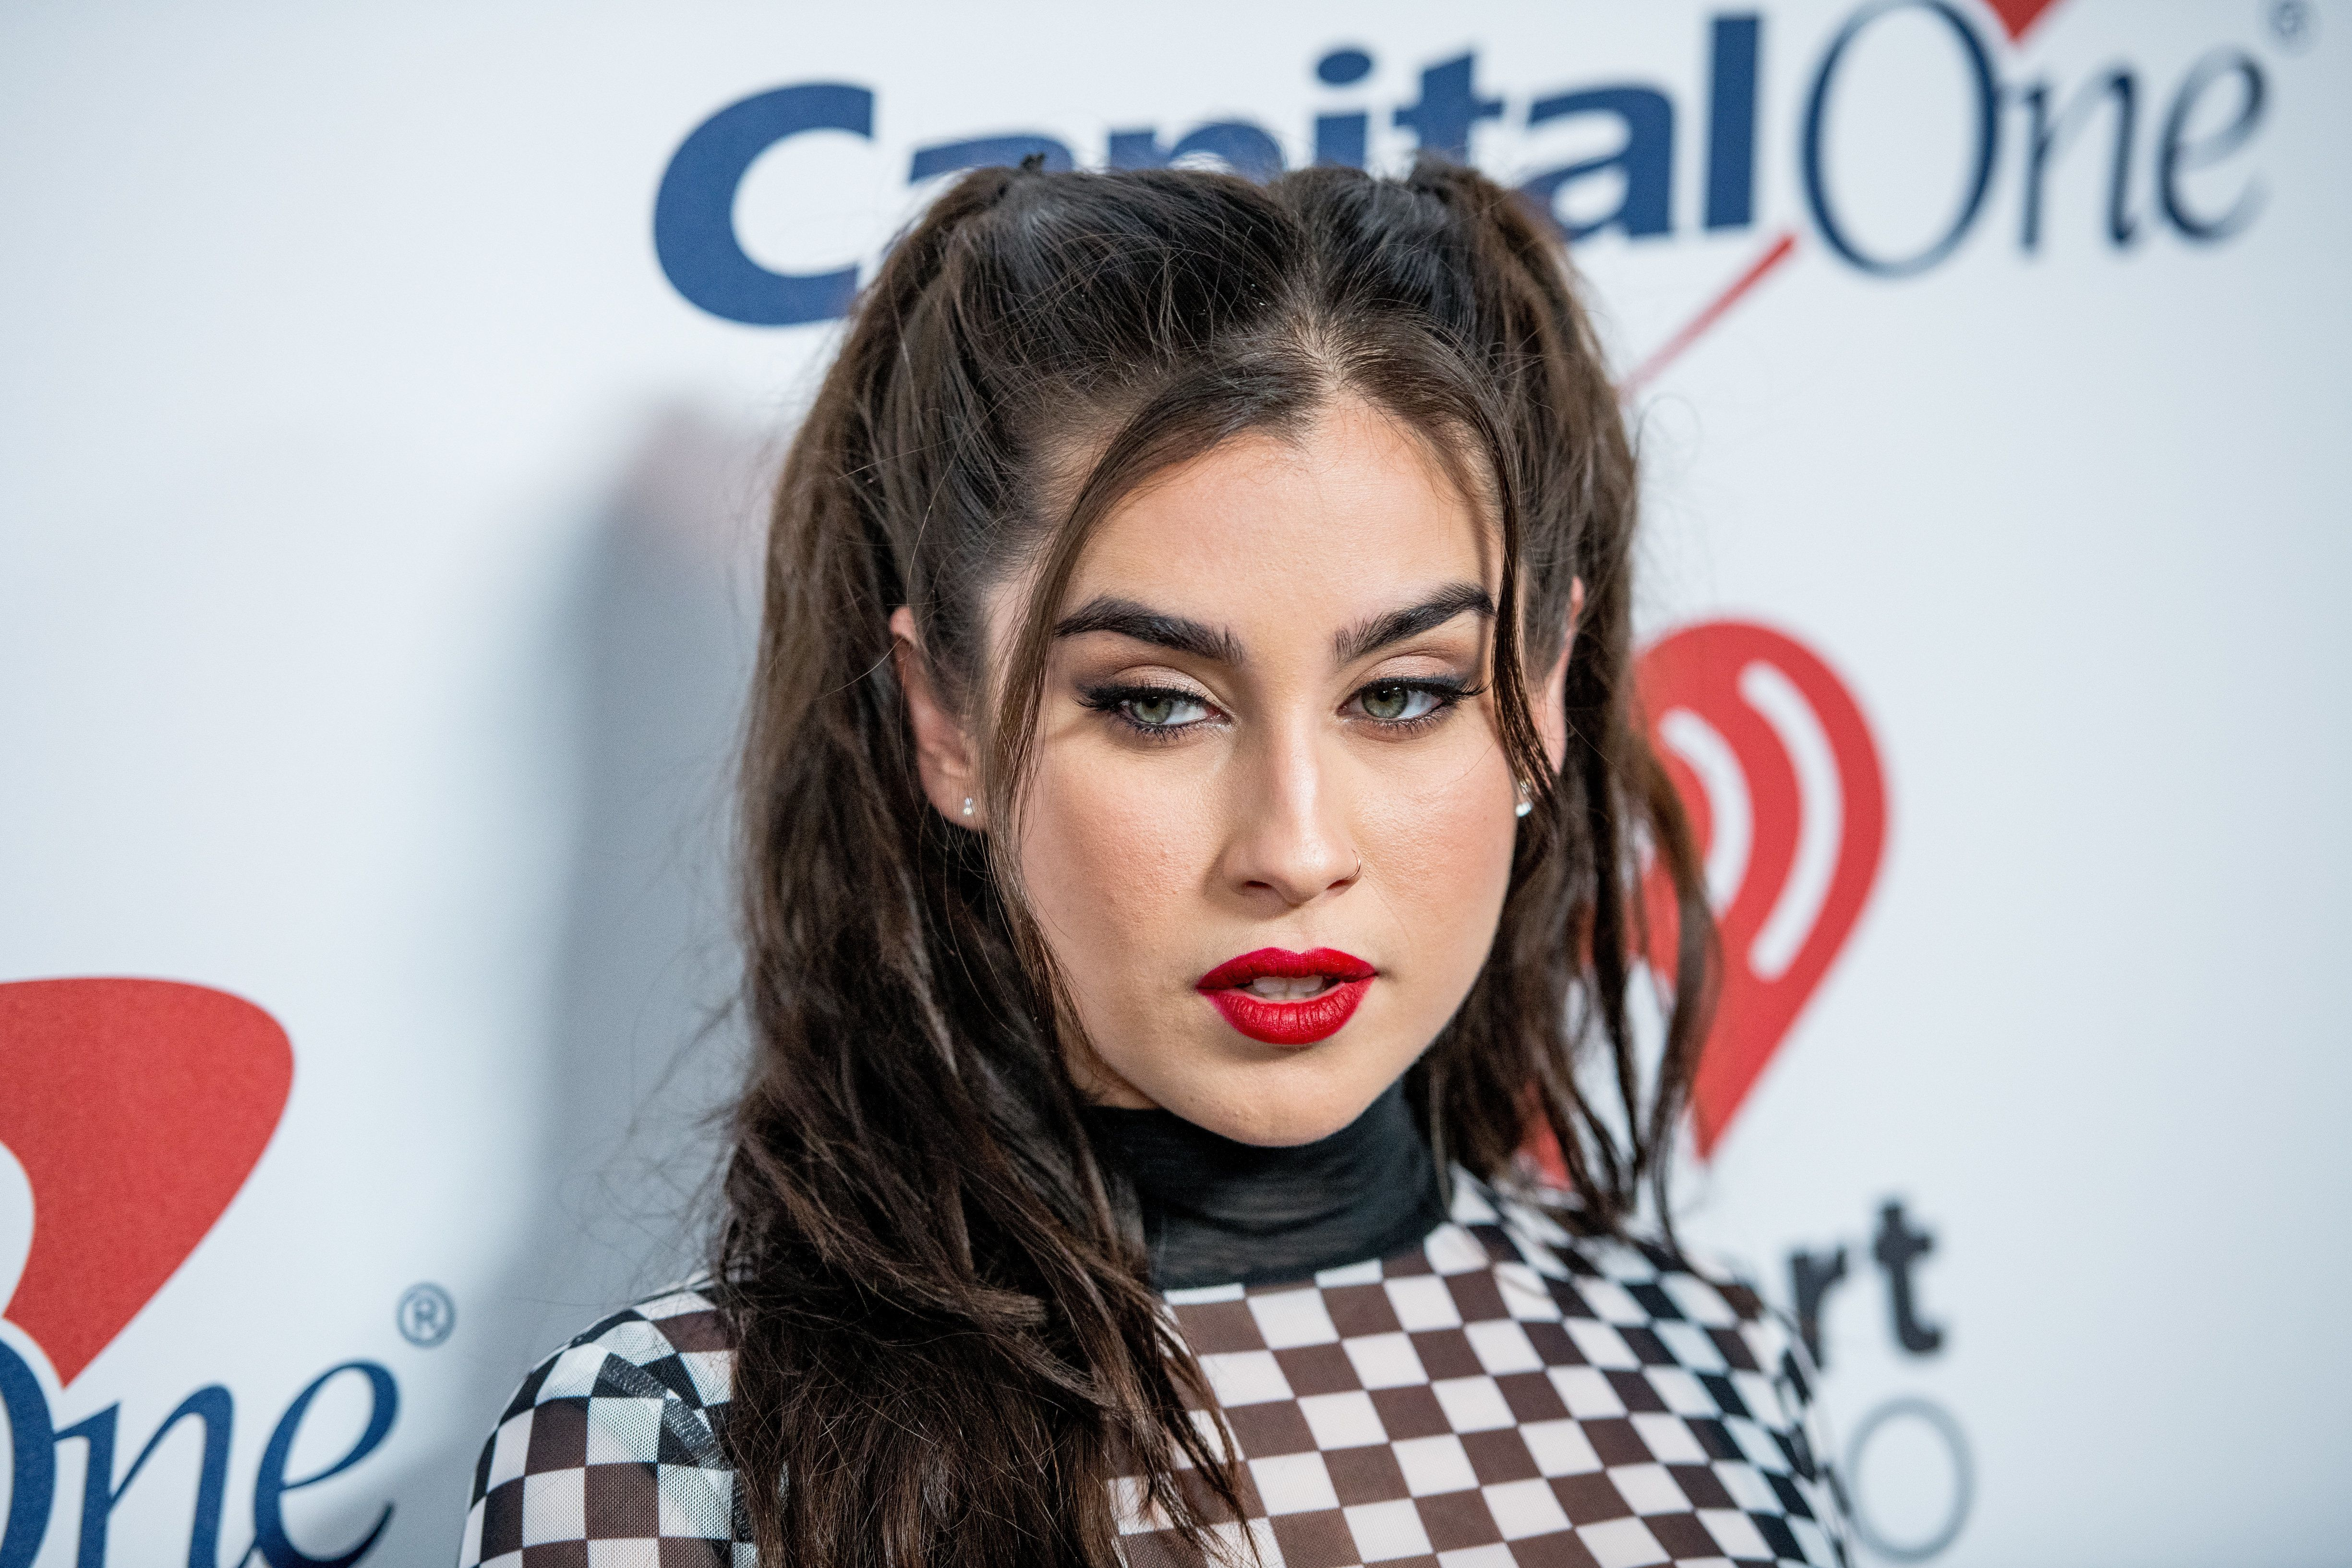 Lauren Jauregui has emerged as a staunch LGBTQ rights advocate in recent months.